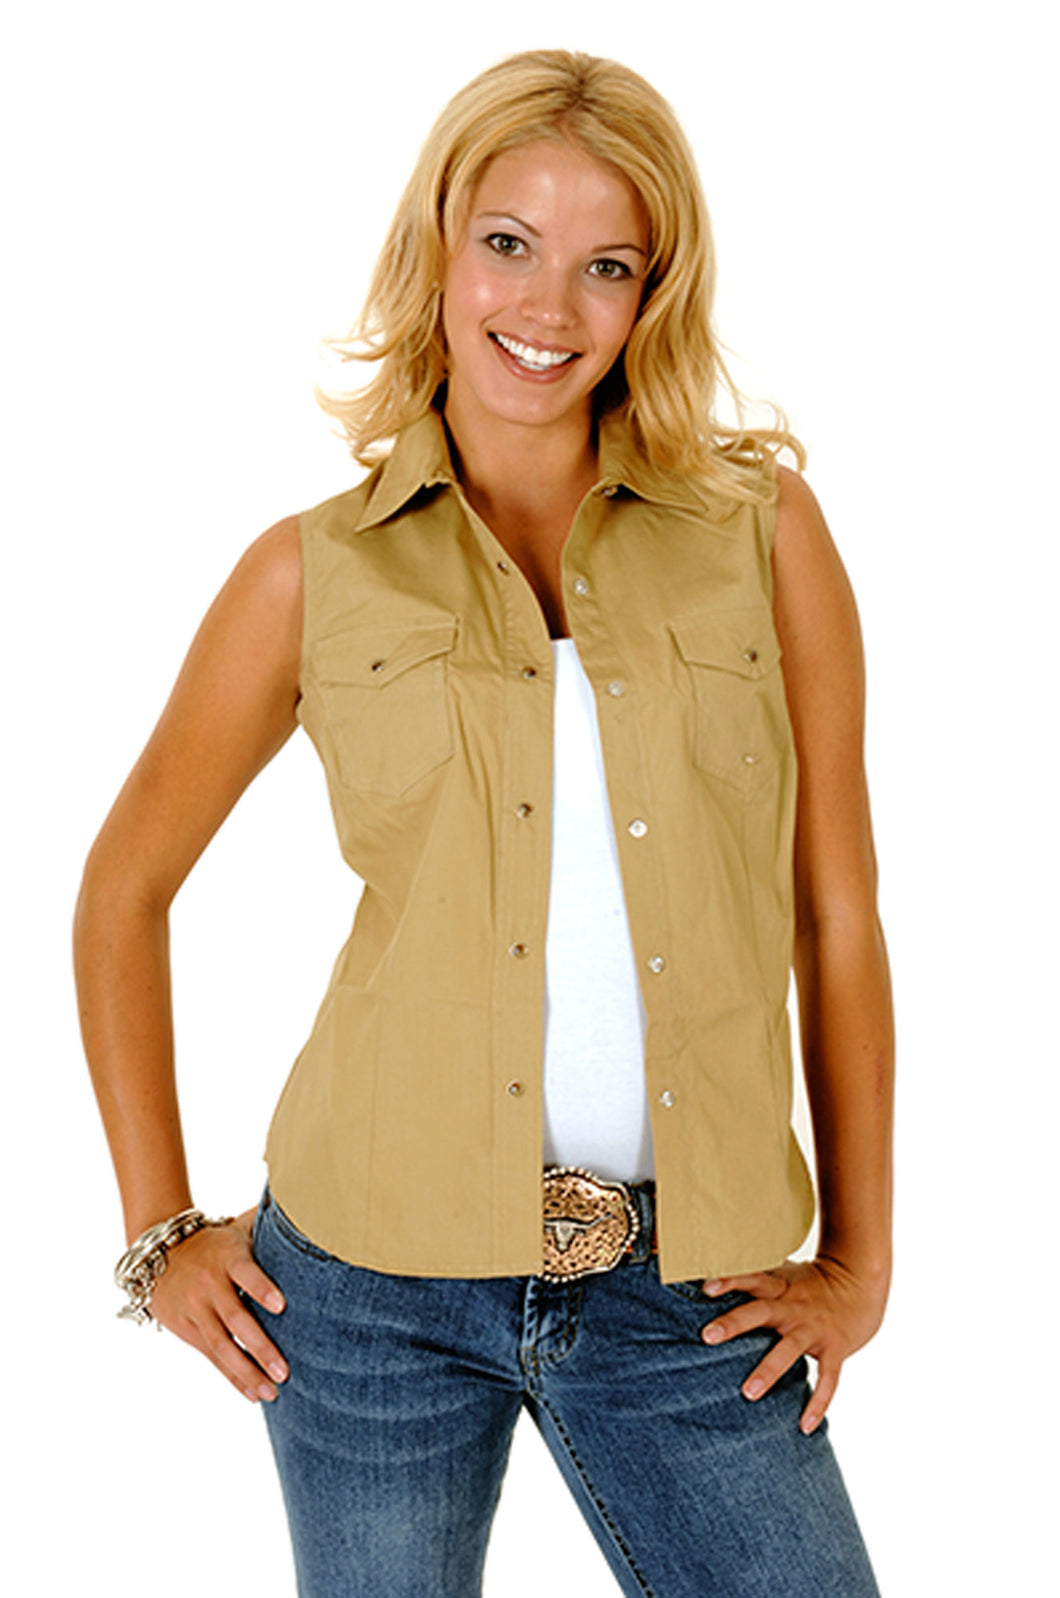 Solid Poplin Snap Collection Basicsolid Ladies Sleeveless Shirt Solid Poplin Western Model Vergtd Snap